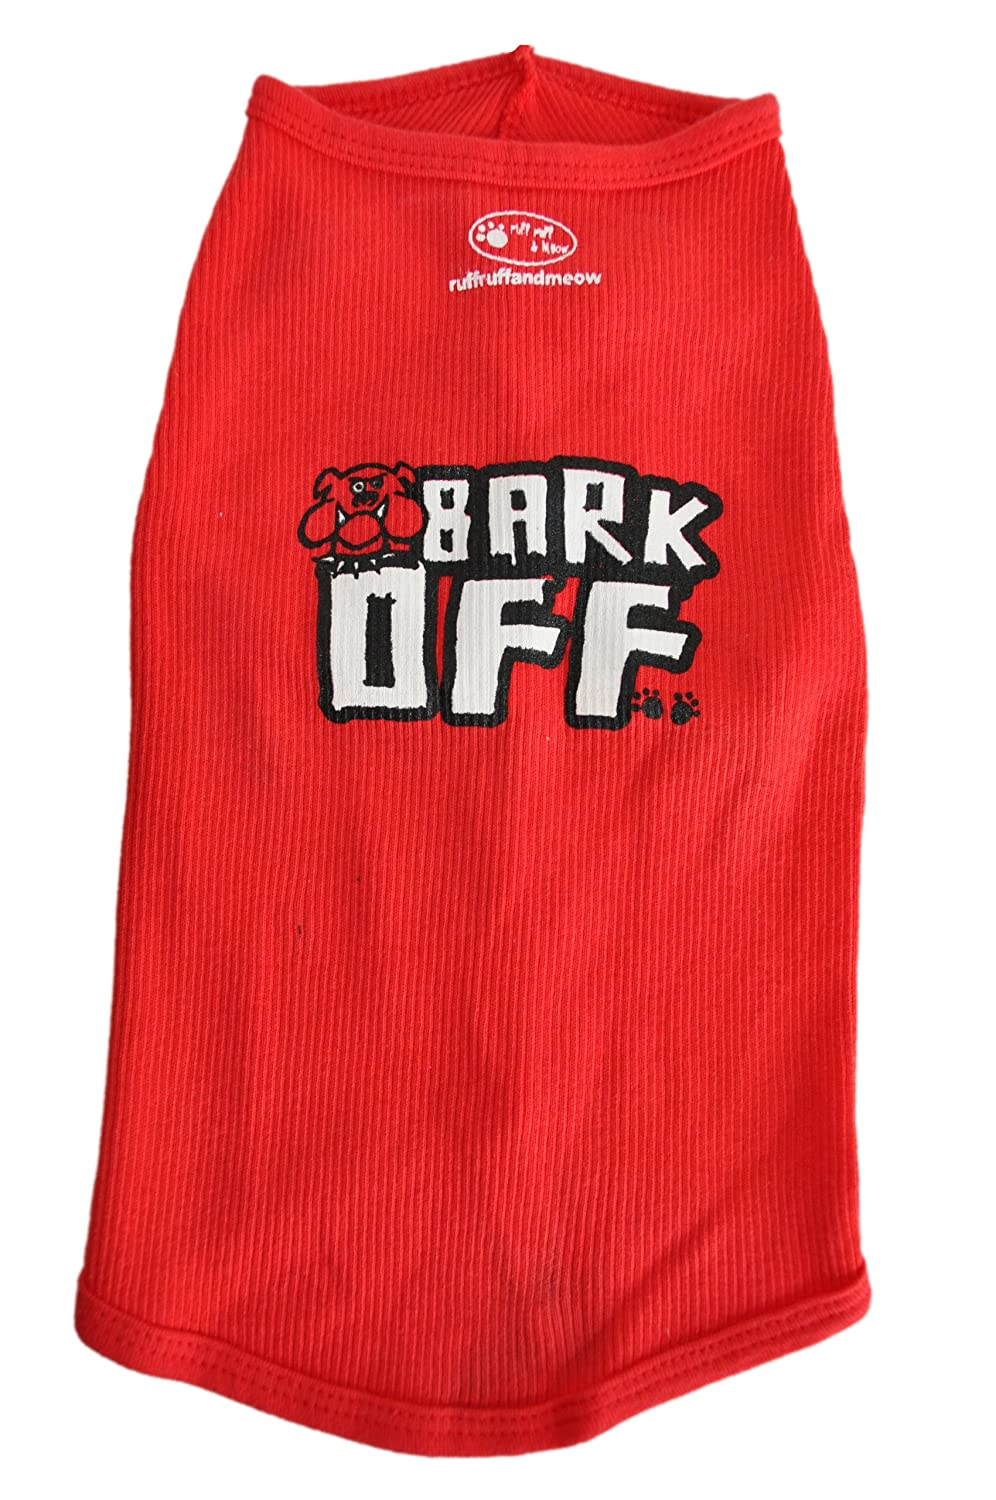 Ruff Ruff and Meow Extra-Small Dog Tank Top, Bark Off, Red